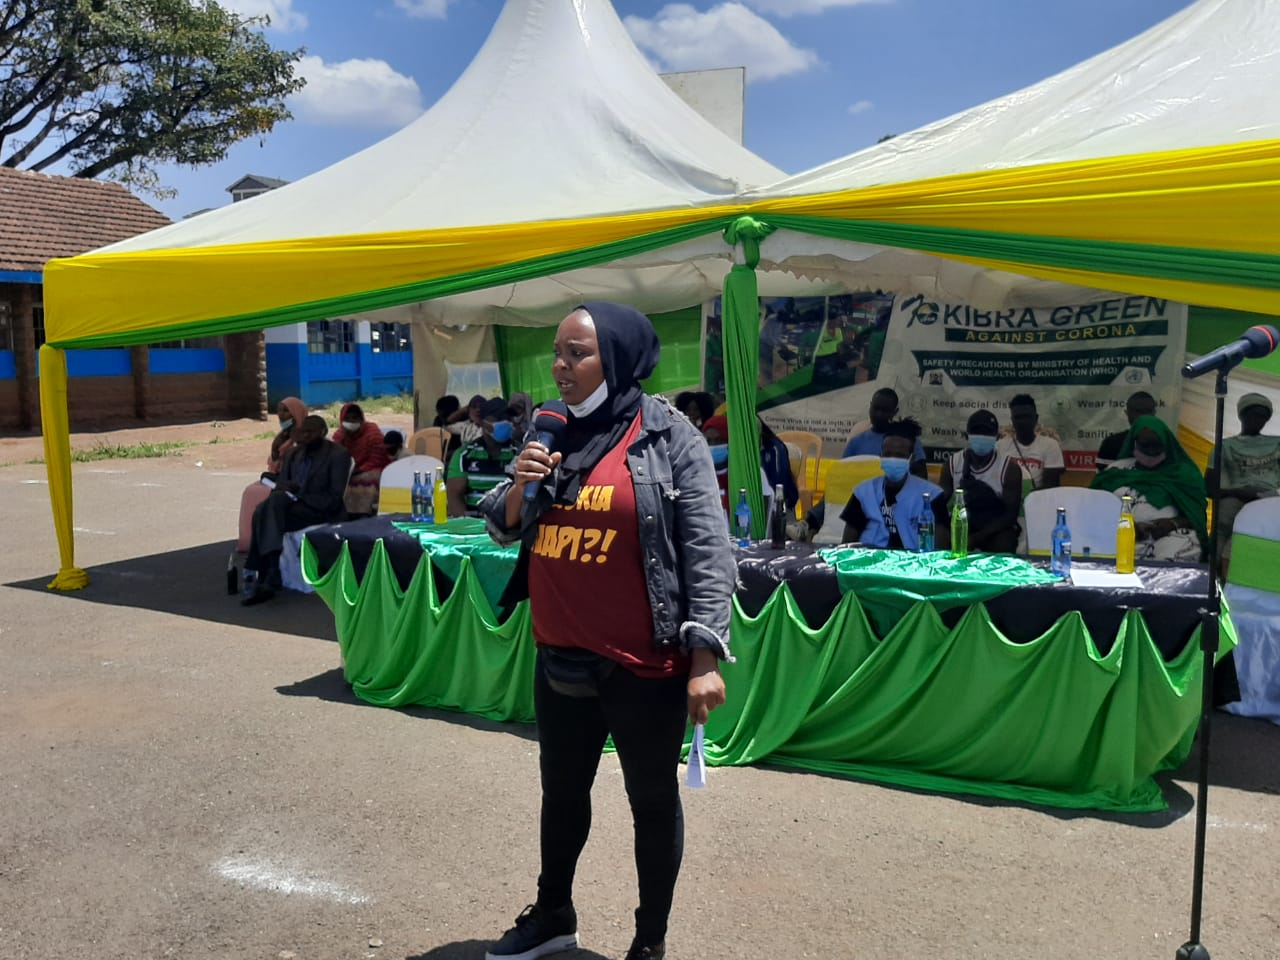 Halima Hanii, speaking at the Kibra Green event in Kibra